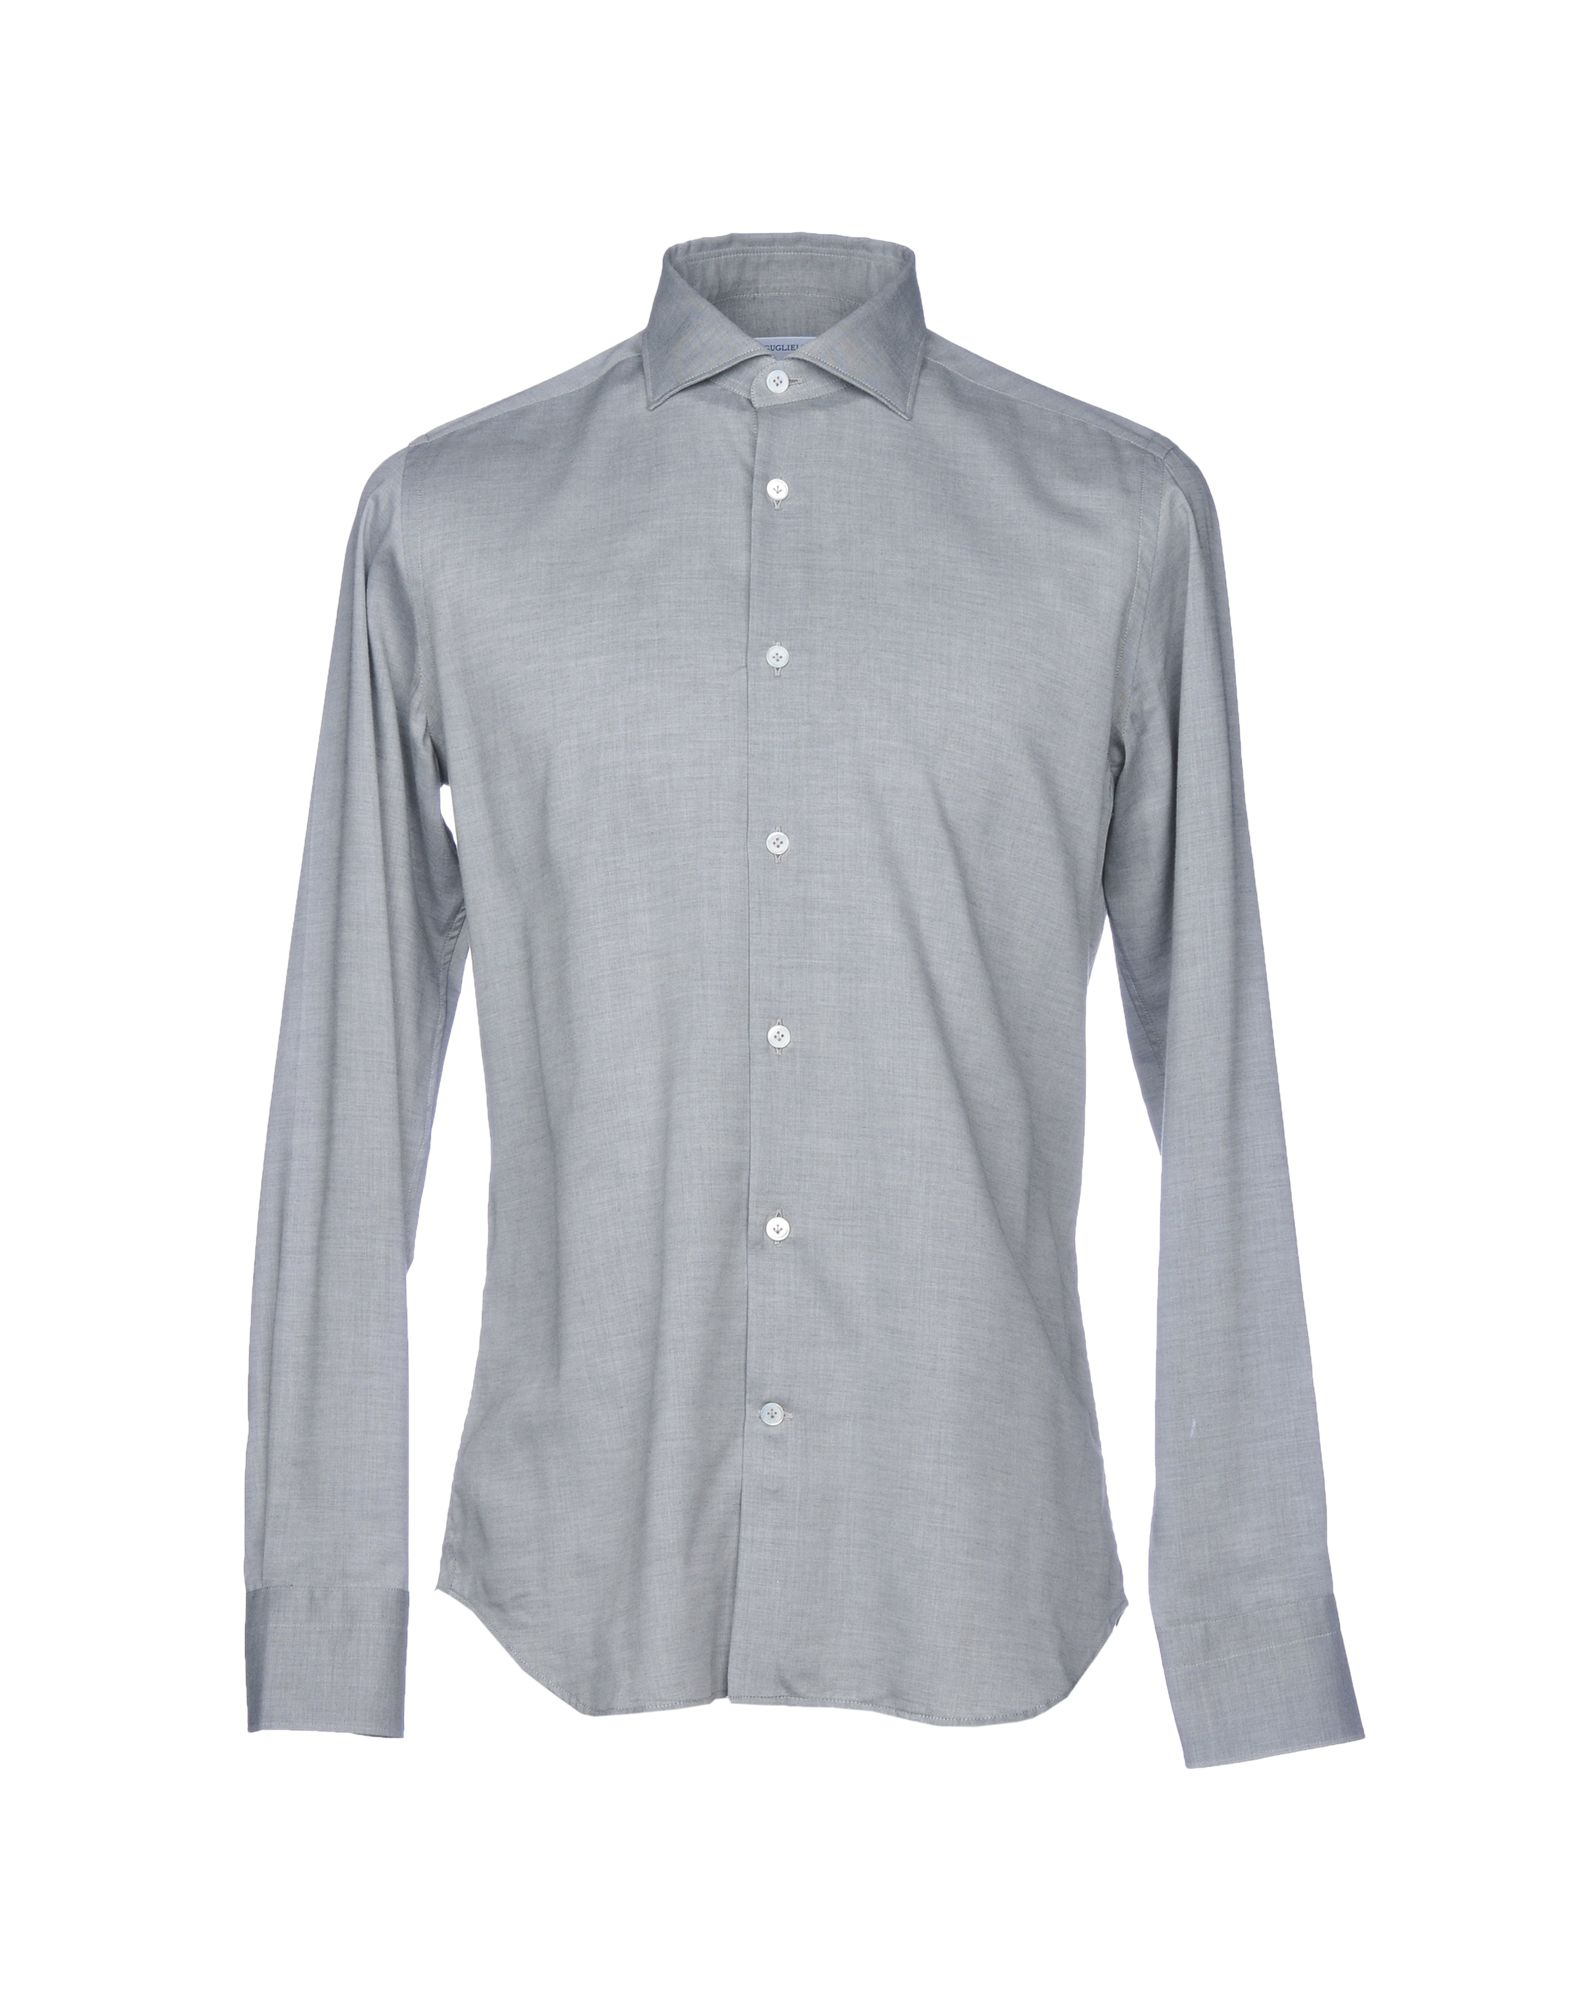 GUGLIELMINOTTI Solid Color Shirt in Grey